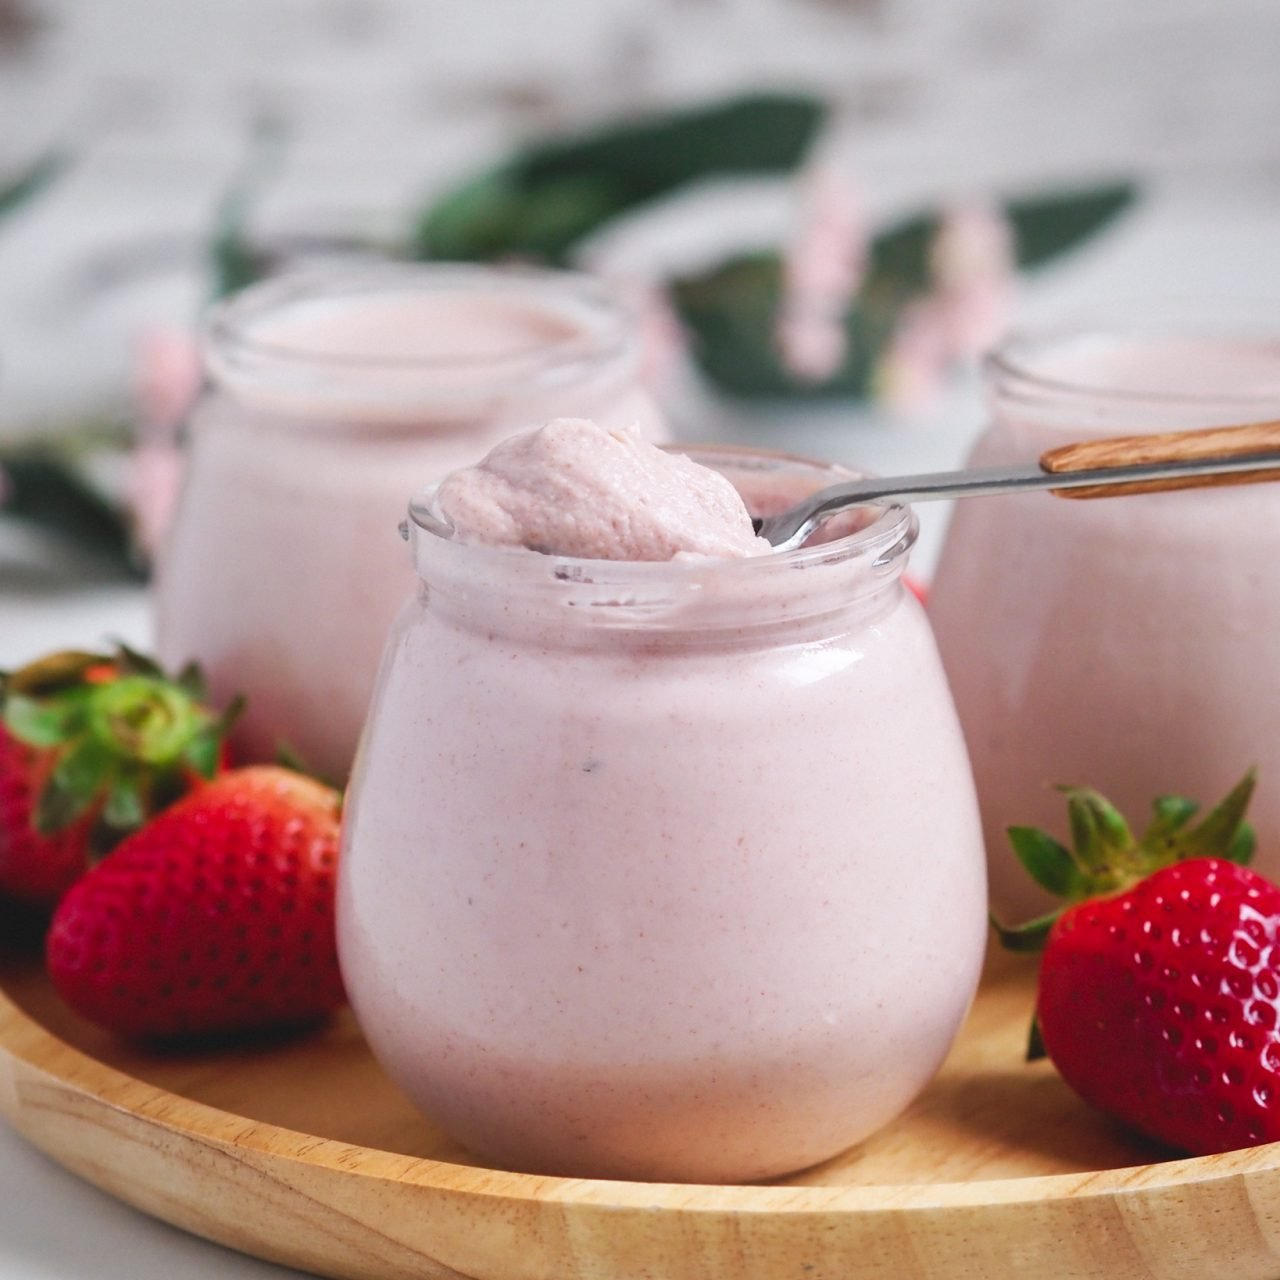 Mousse de fresas saludable